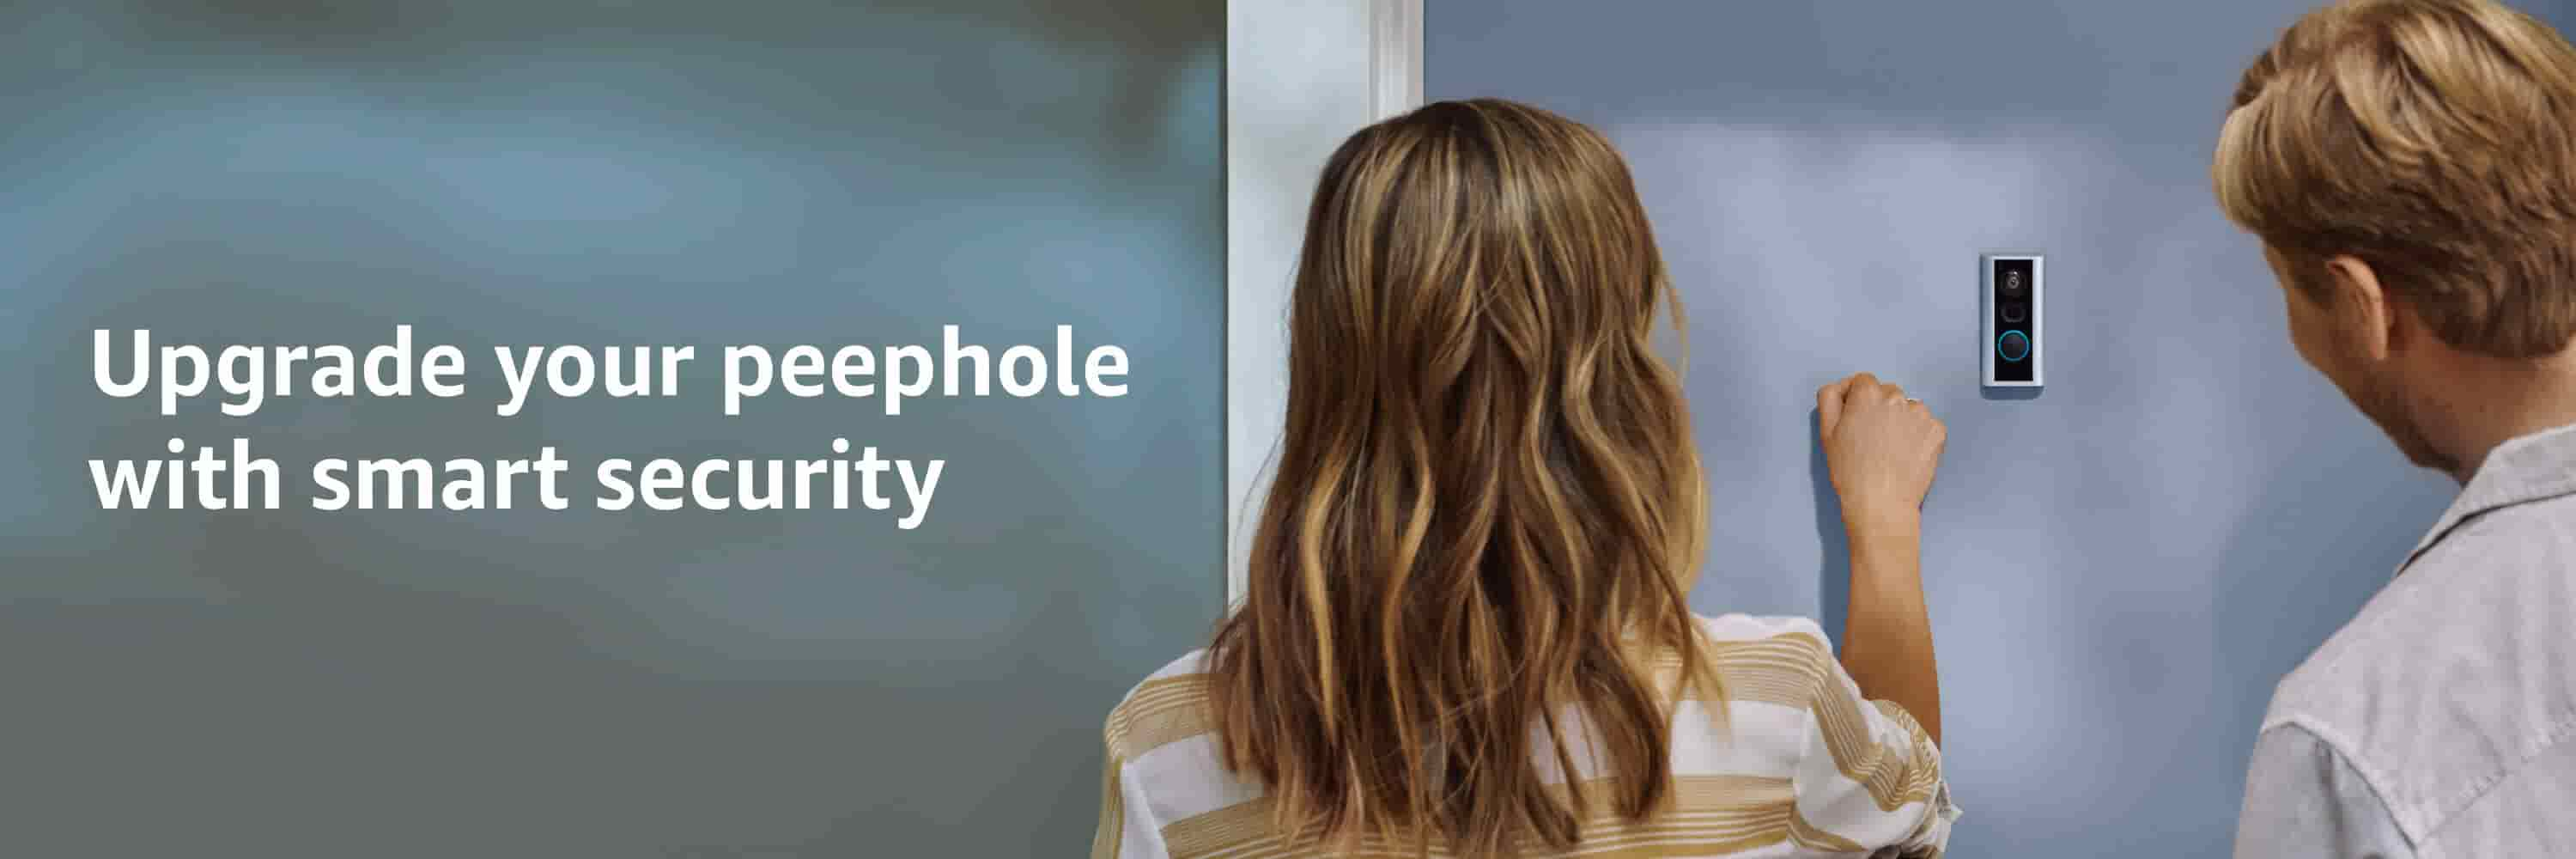 Upgrade your peephole with smart security